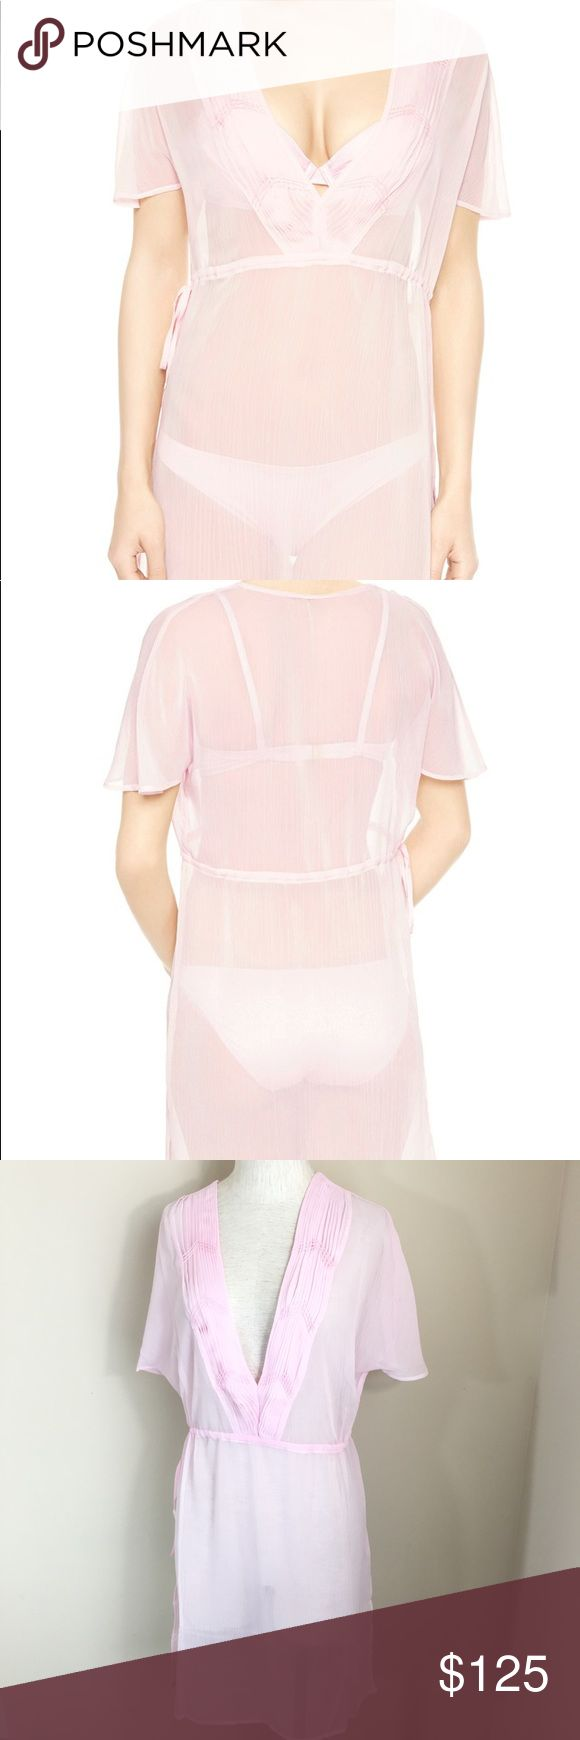 """La Perla Baltimora Caftan Sheer Cover Up Dress This is a new with tags La Perla Caftan. Can be used as a swim cover up. Light Pink. US Size 6 and 8 available. Sheer and lightweight. 100% Polyester. Features drawstring waist.     Size 8 Measurements taken while laying flat: 16"""" Shoulder to shoulder 20"""" Chest 35"""" Length 19"""" Waist   Size 6 Measurements taken while laying flat: 14"""" Shoulder to shoulder 19"""" Chest 35"""" Length 17"""" Waist La Perla Swim Coverups"""